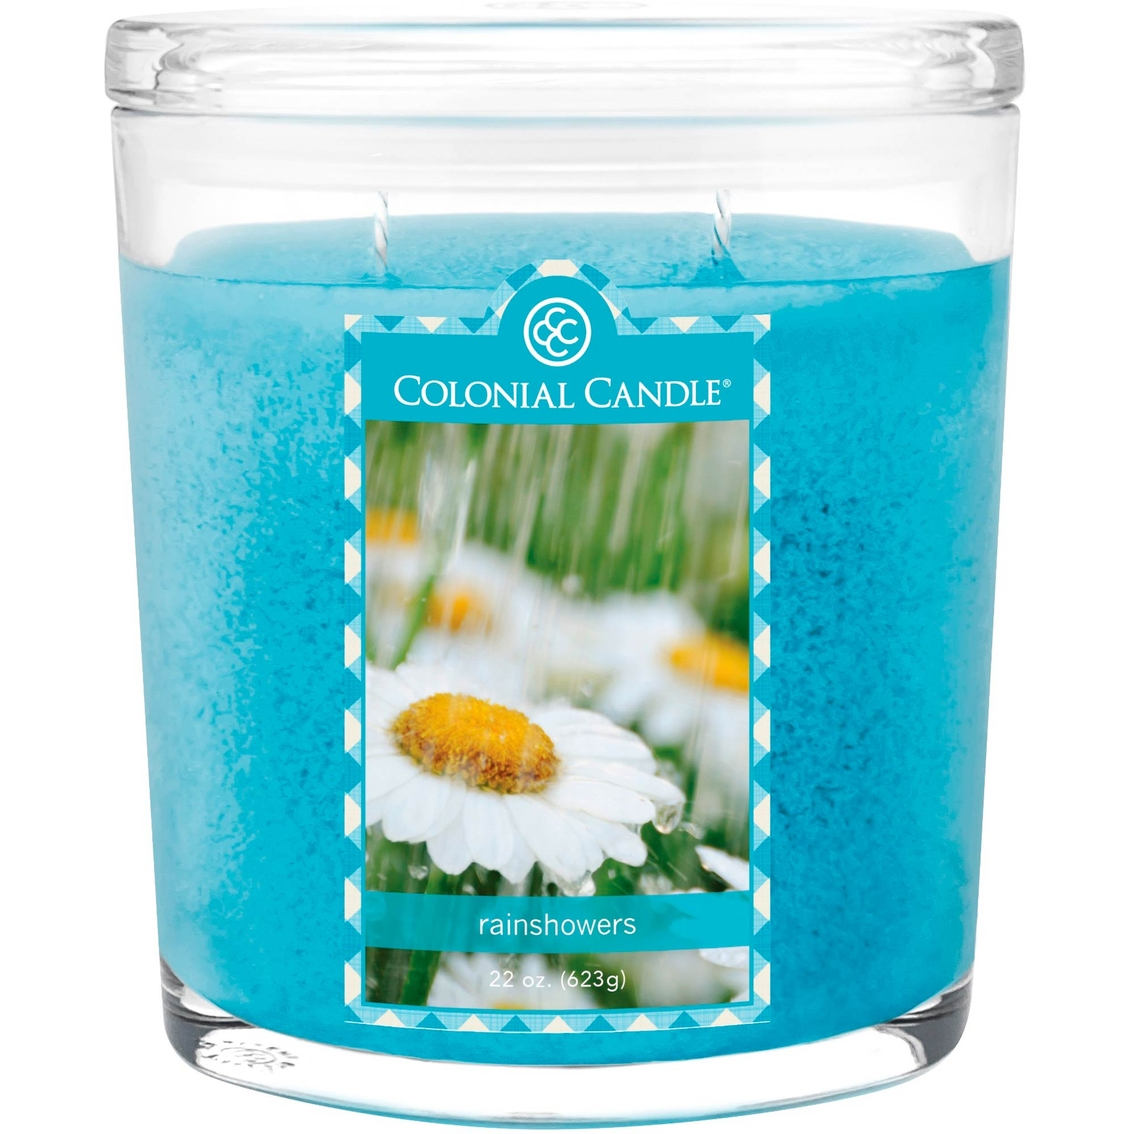 colonial candle rainshowers 22 oz  candle